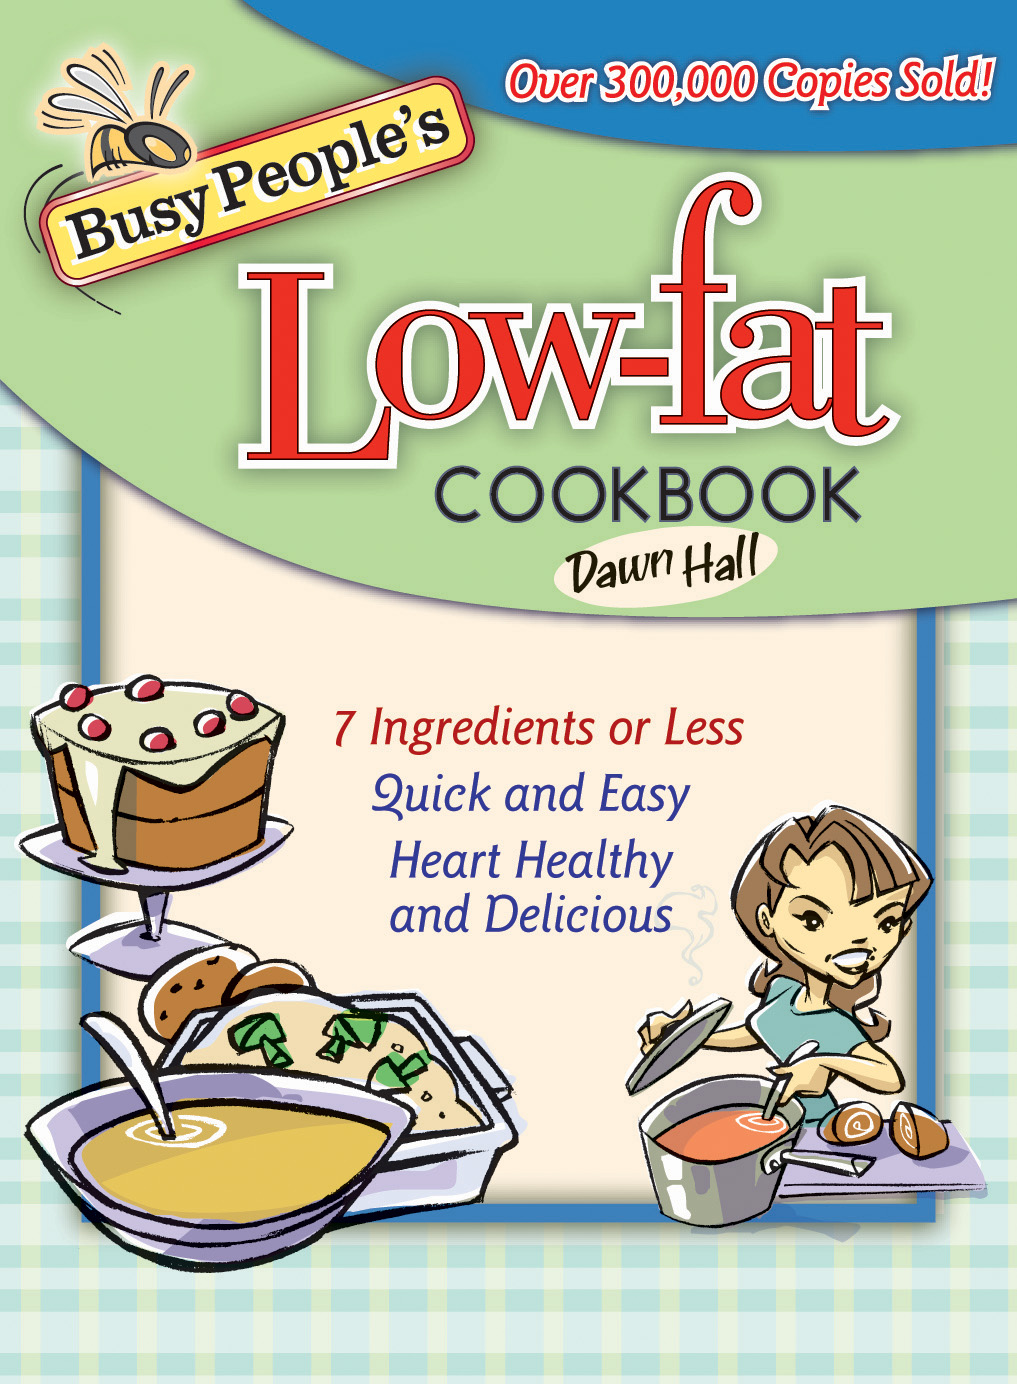 Busy People's Low-Fat Cookbook